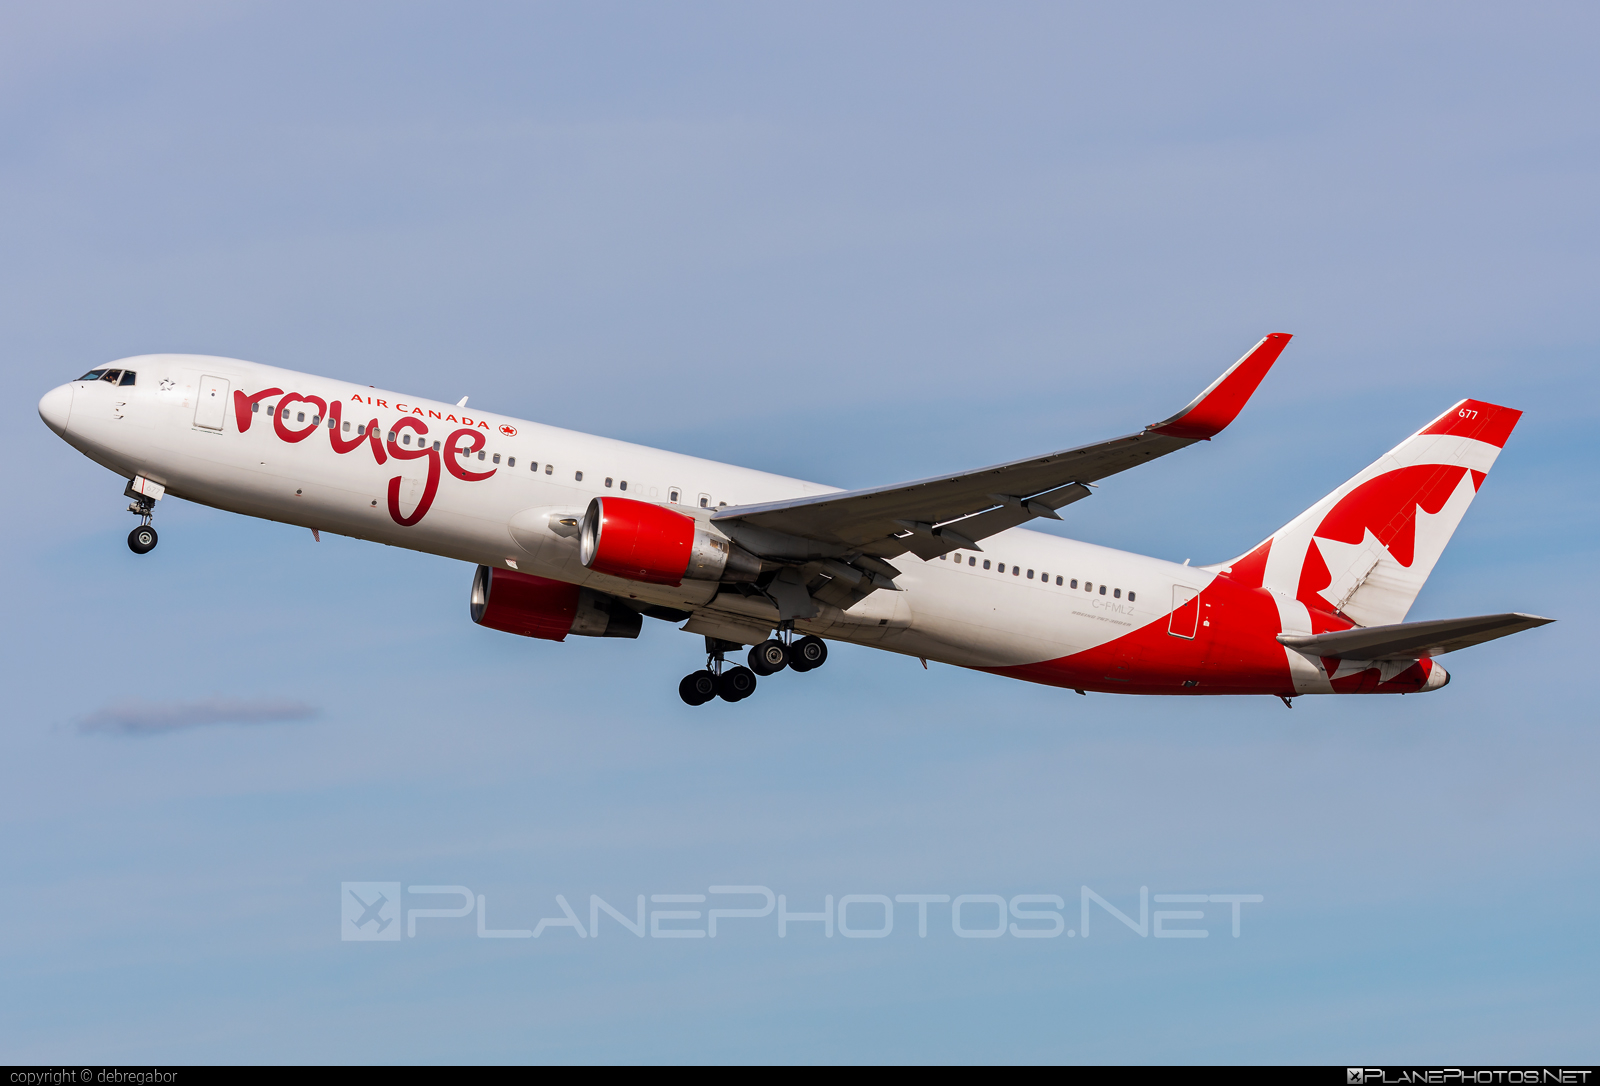 Boeing 767-300ER - C-FMLZ operated by Air Canada Rouge #aircanadarouge #b767 #b767er #boeing #boeing767